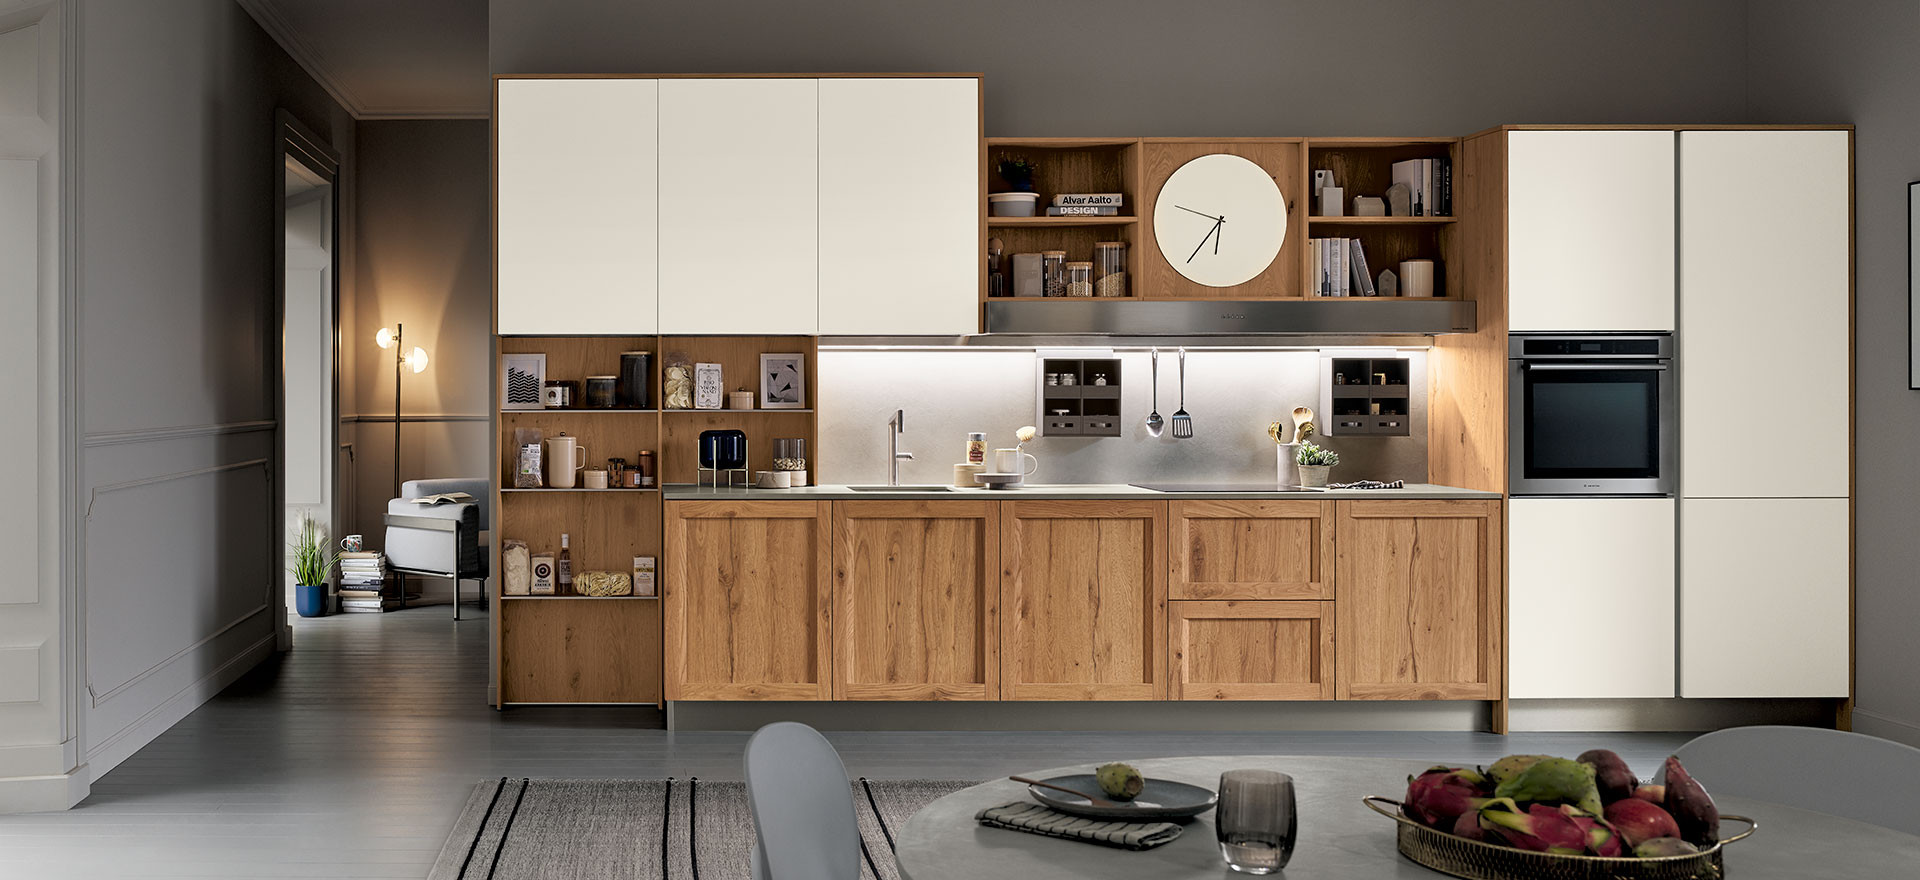 Veneta Cucine Sardegna.Furniture Kitchens And Living Rooms Veneta Cucine